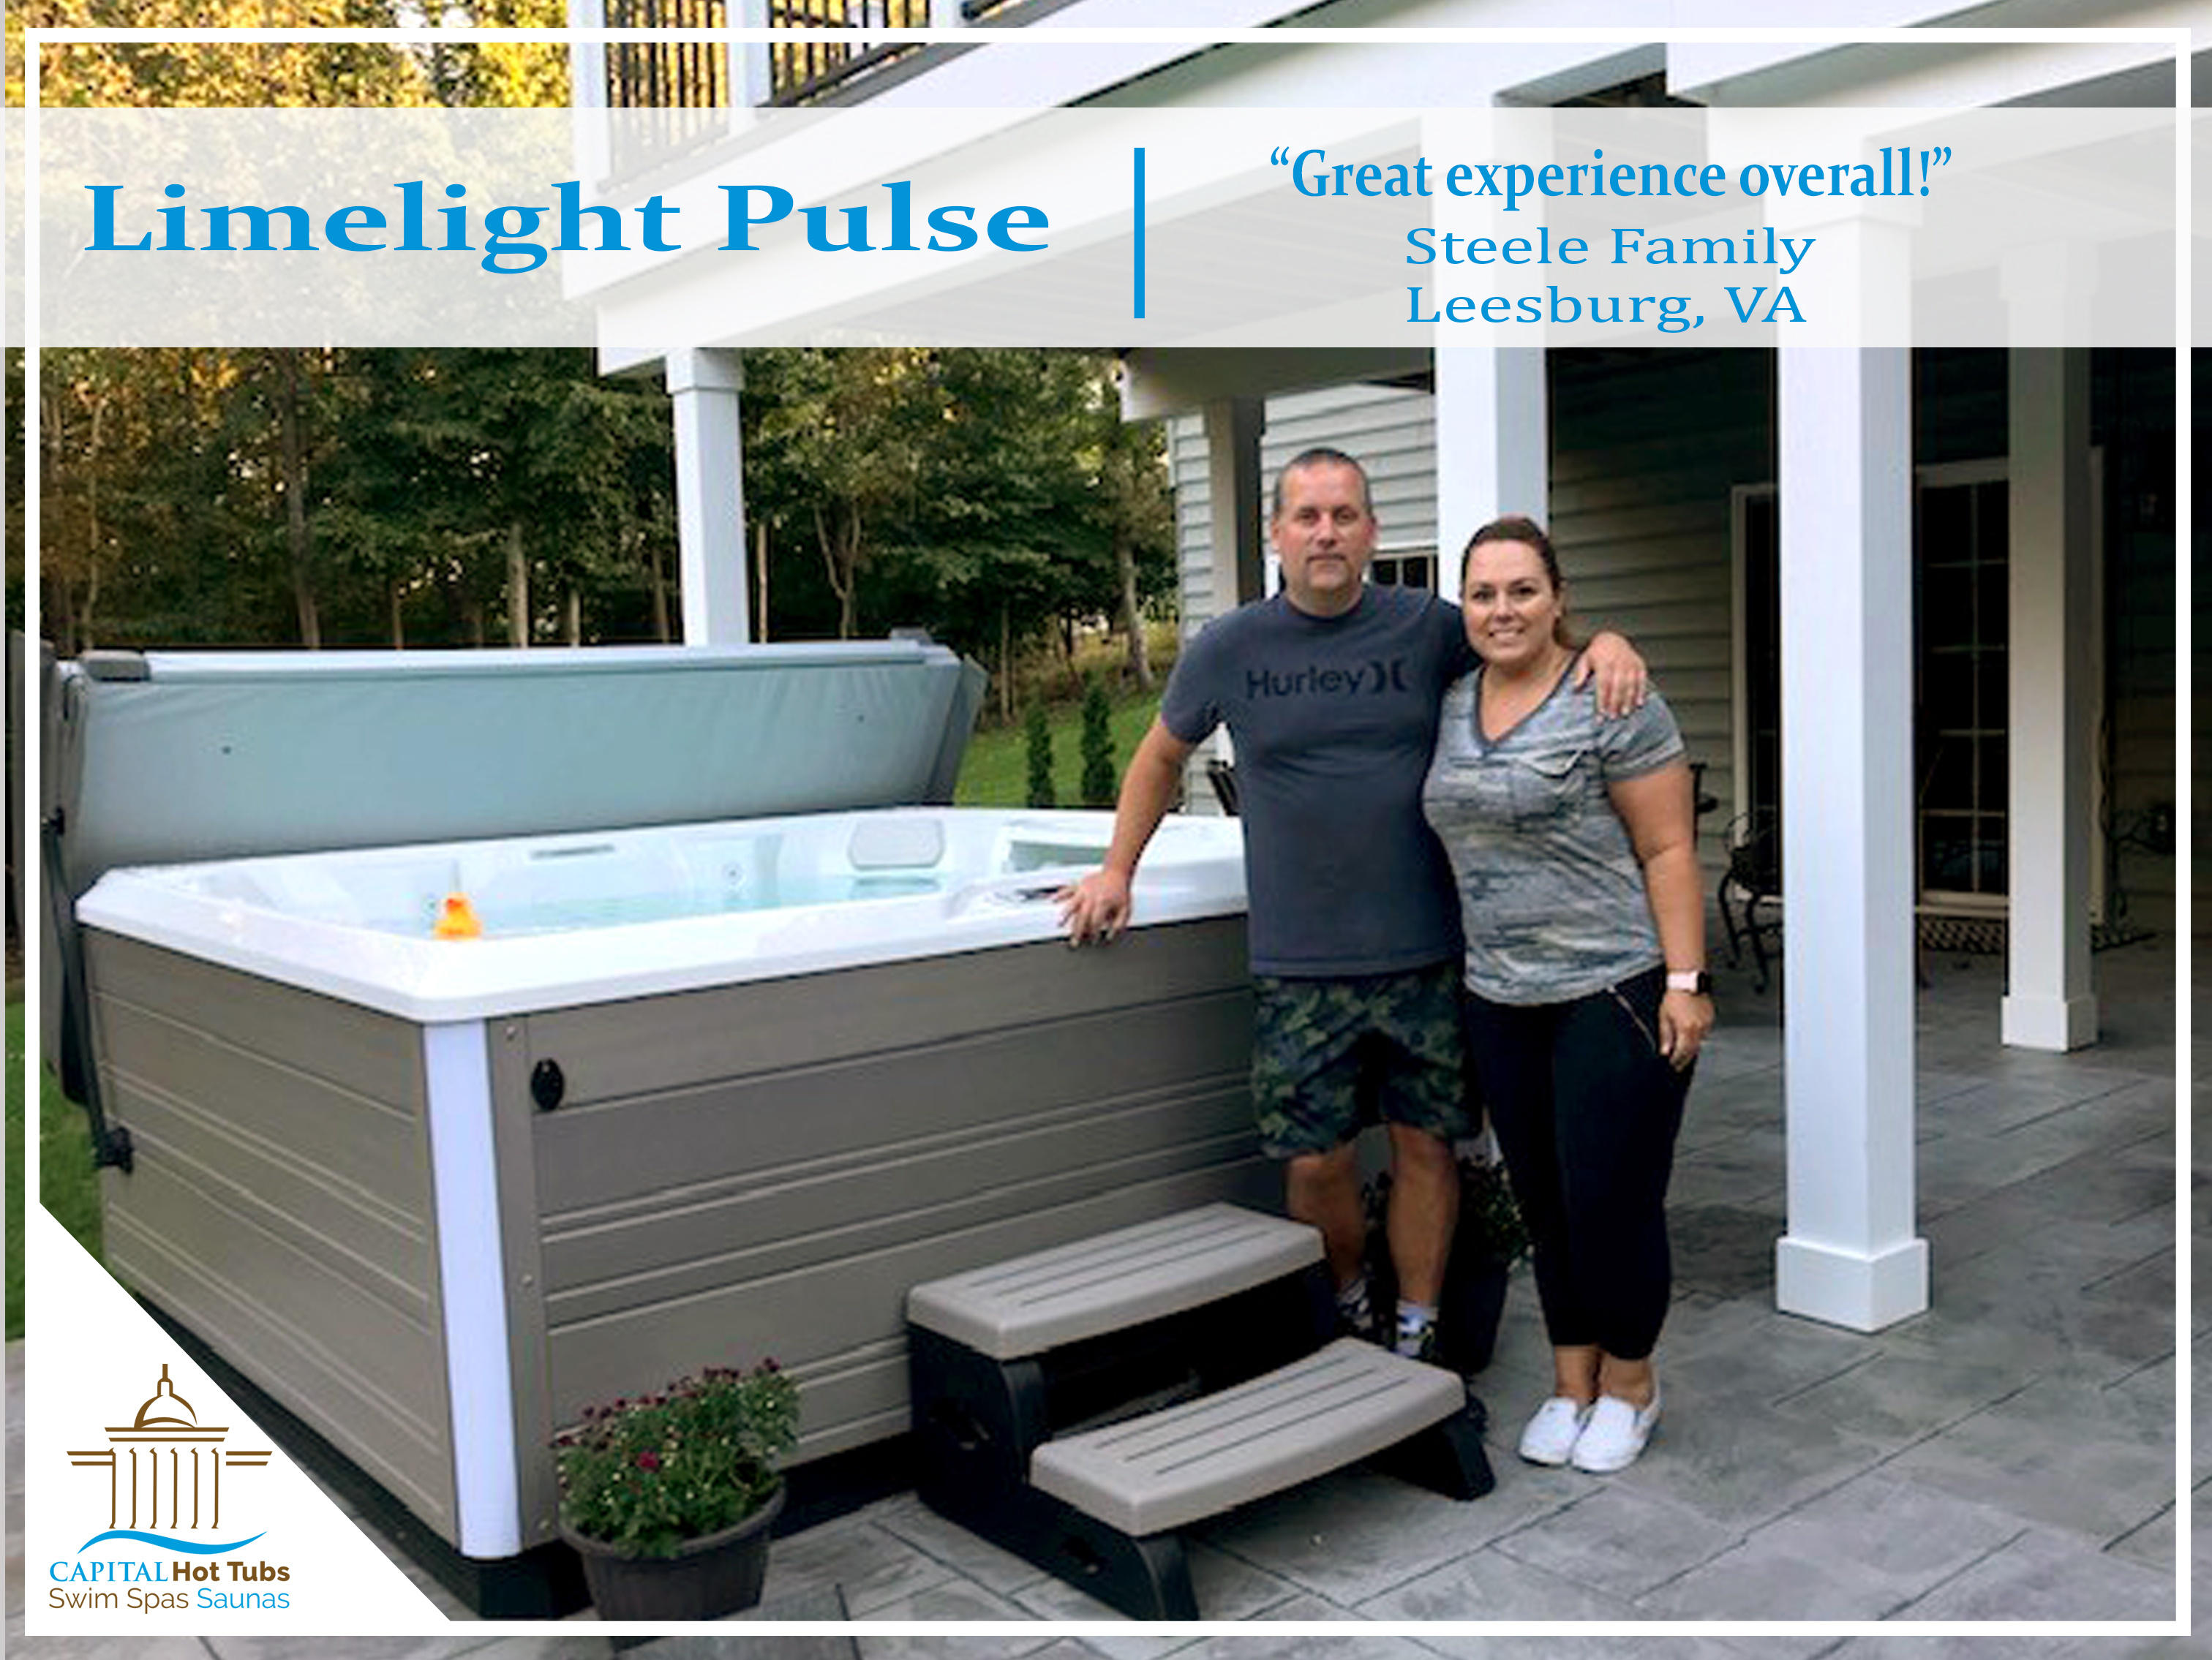 couple next to beautiful hot tub on back patio